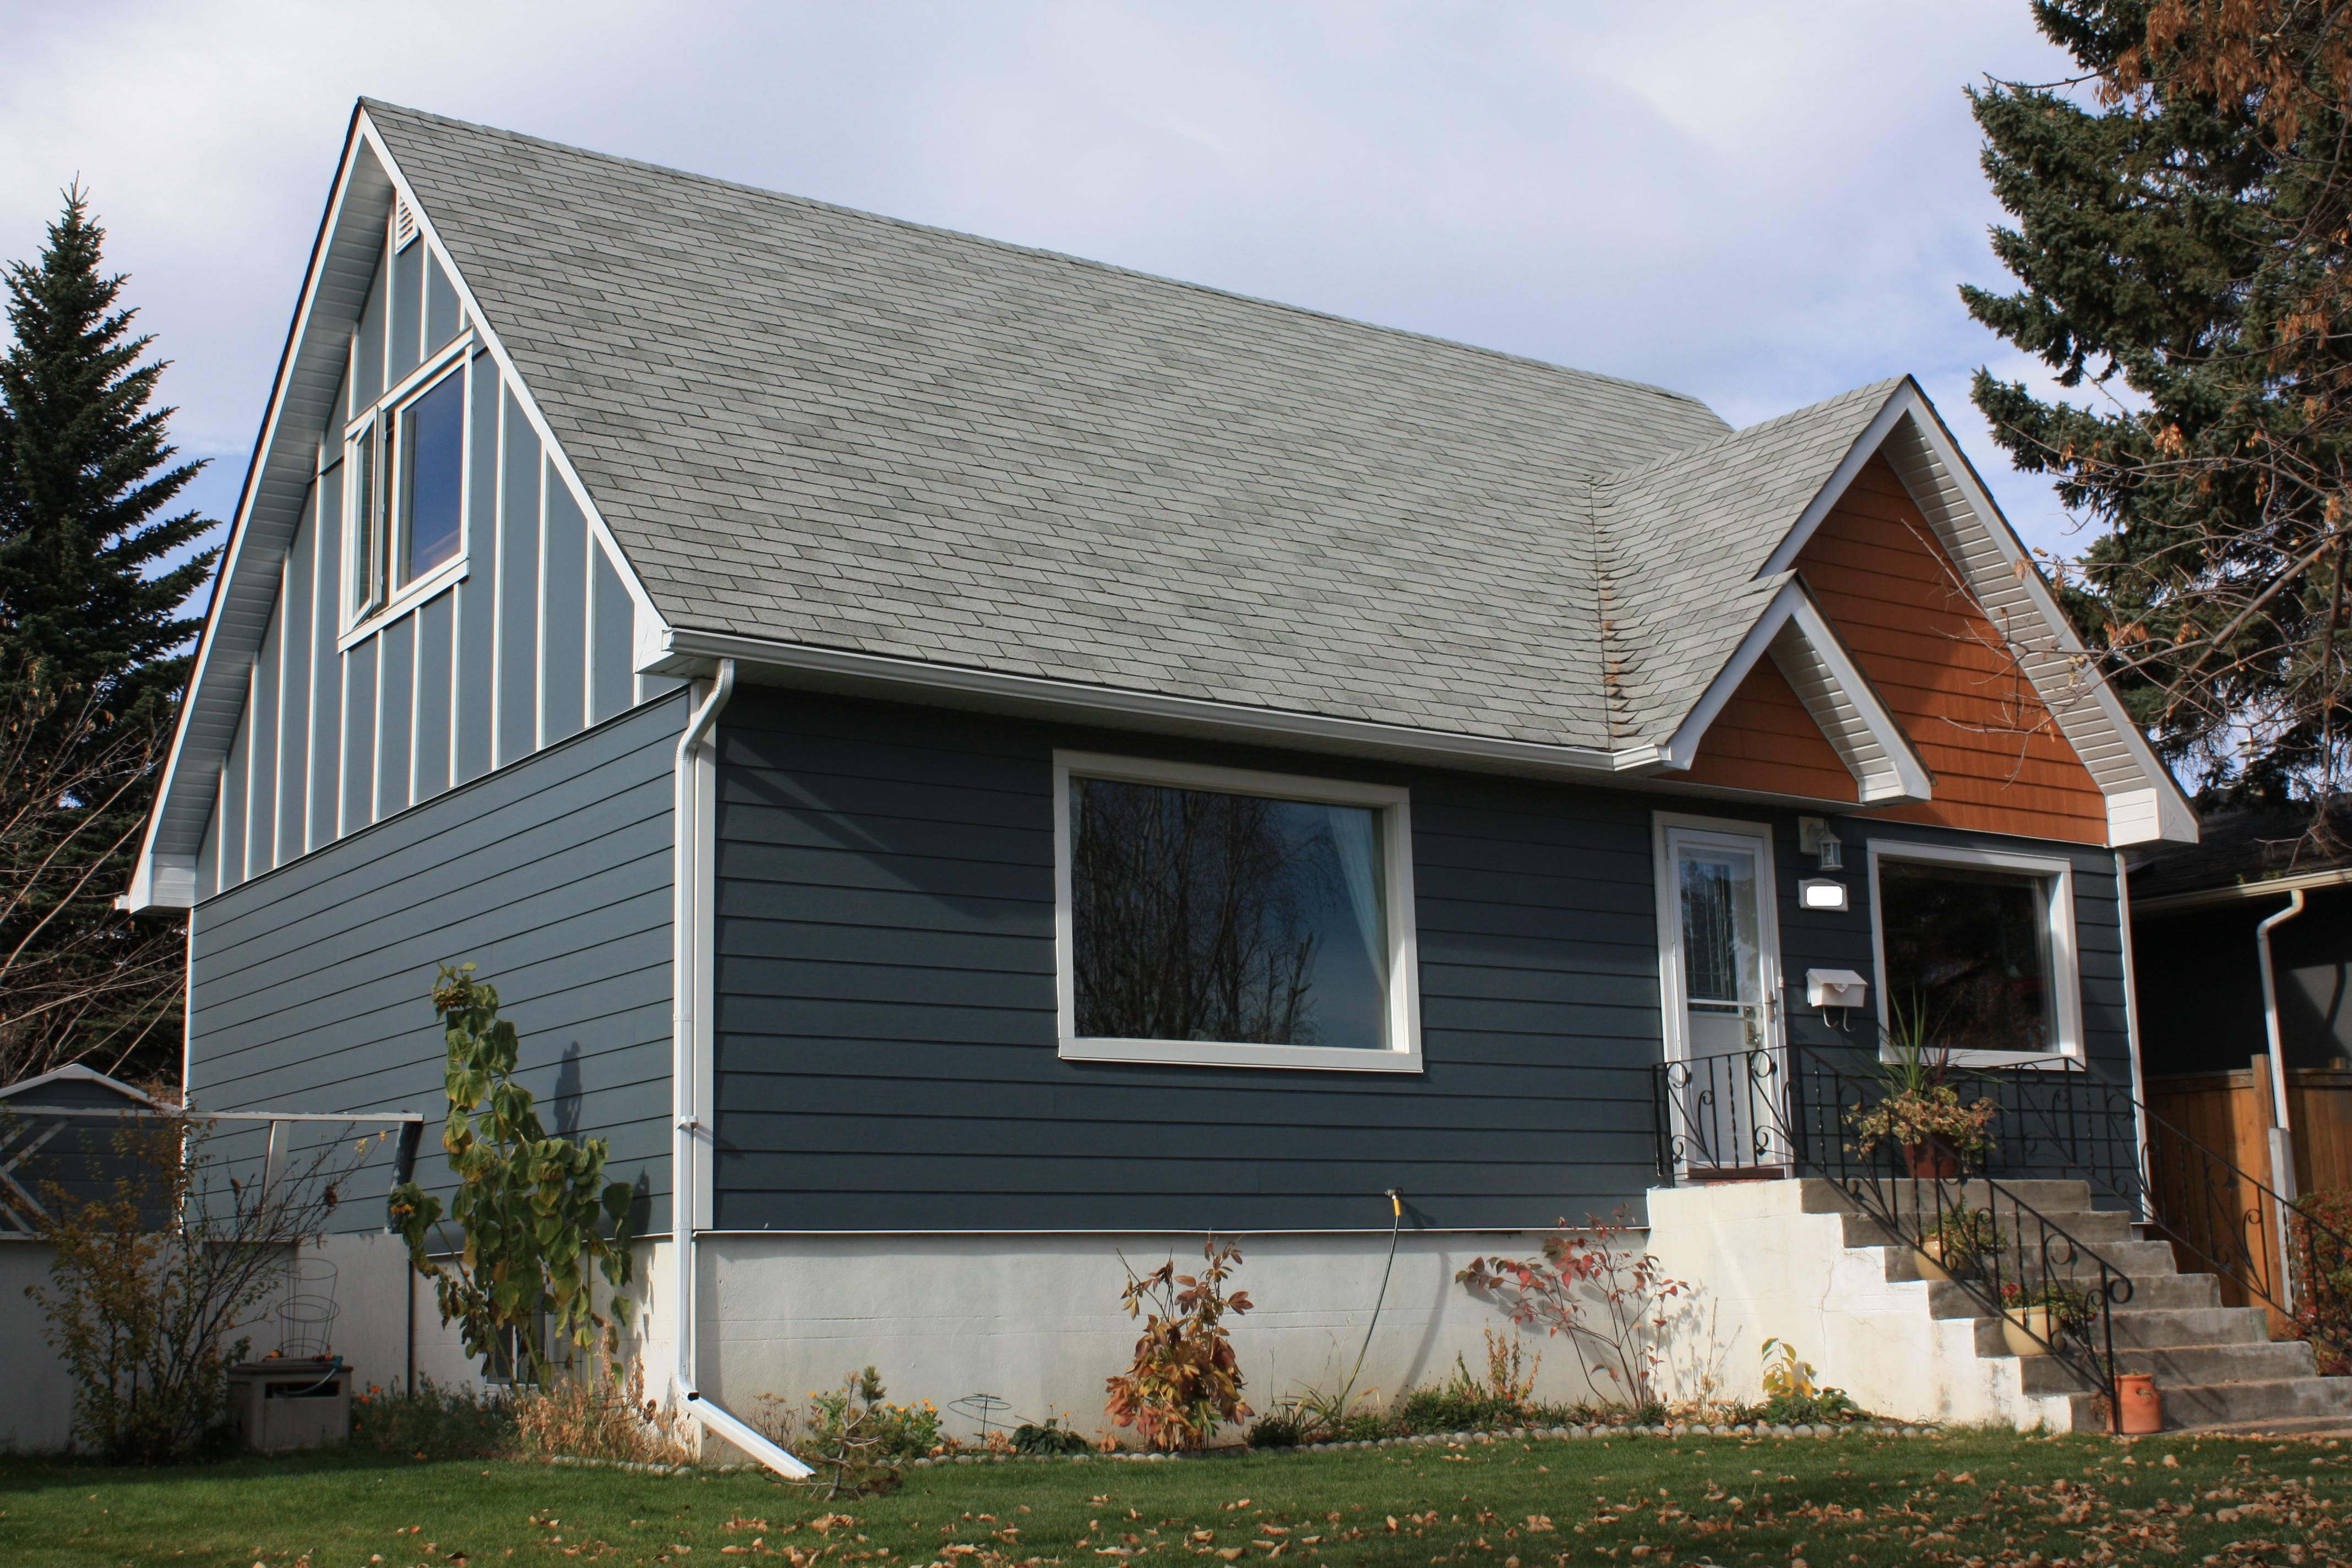 James Hardie Cedarmill Select 7 Profile Siding And Board And Batten In Evening Blue Trim Exterior Renovation Home Improvement Contractors James Hardie Siding